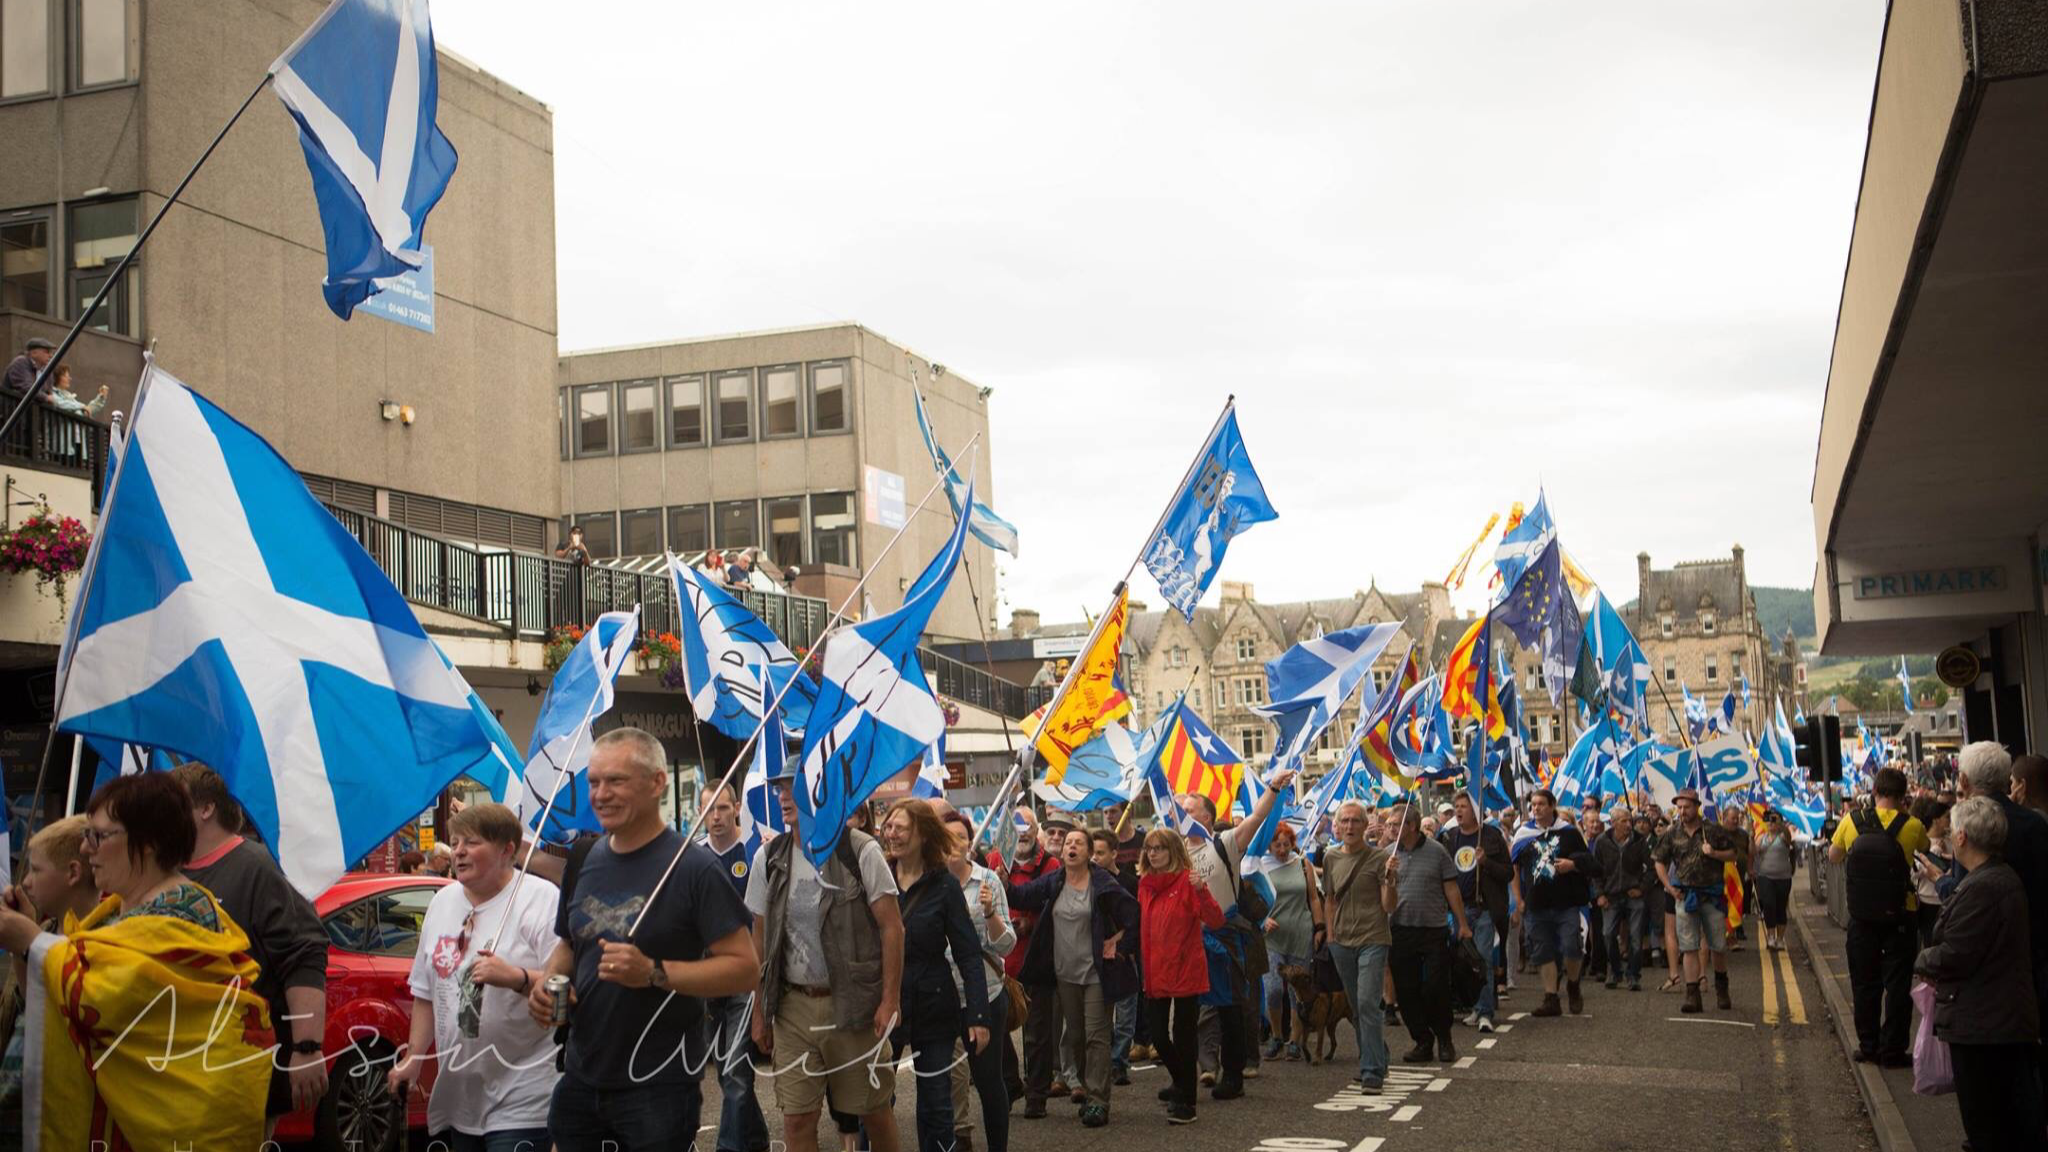 Scotland Standing Up for our citizens- Highlands march Inverness, camera 2